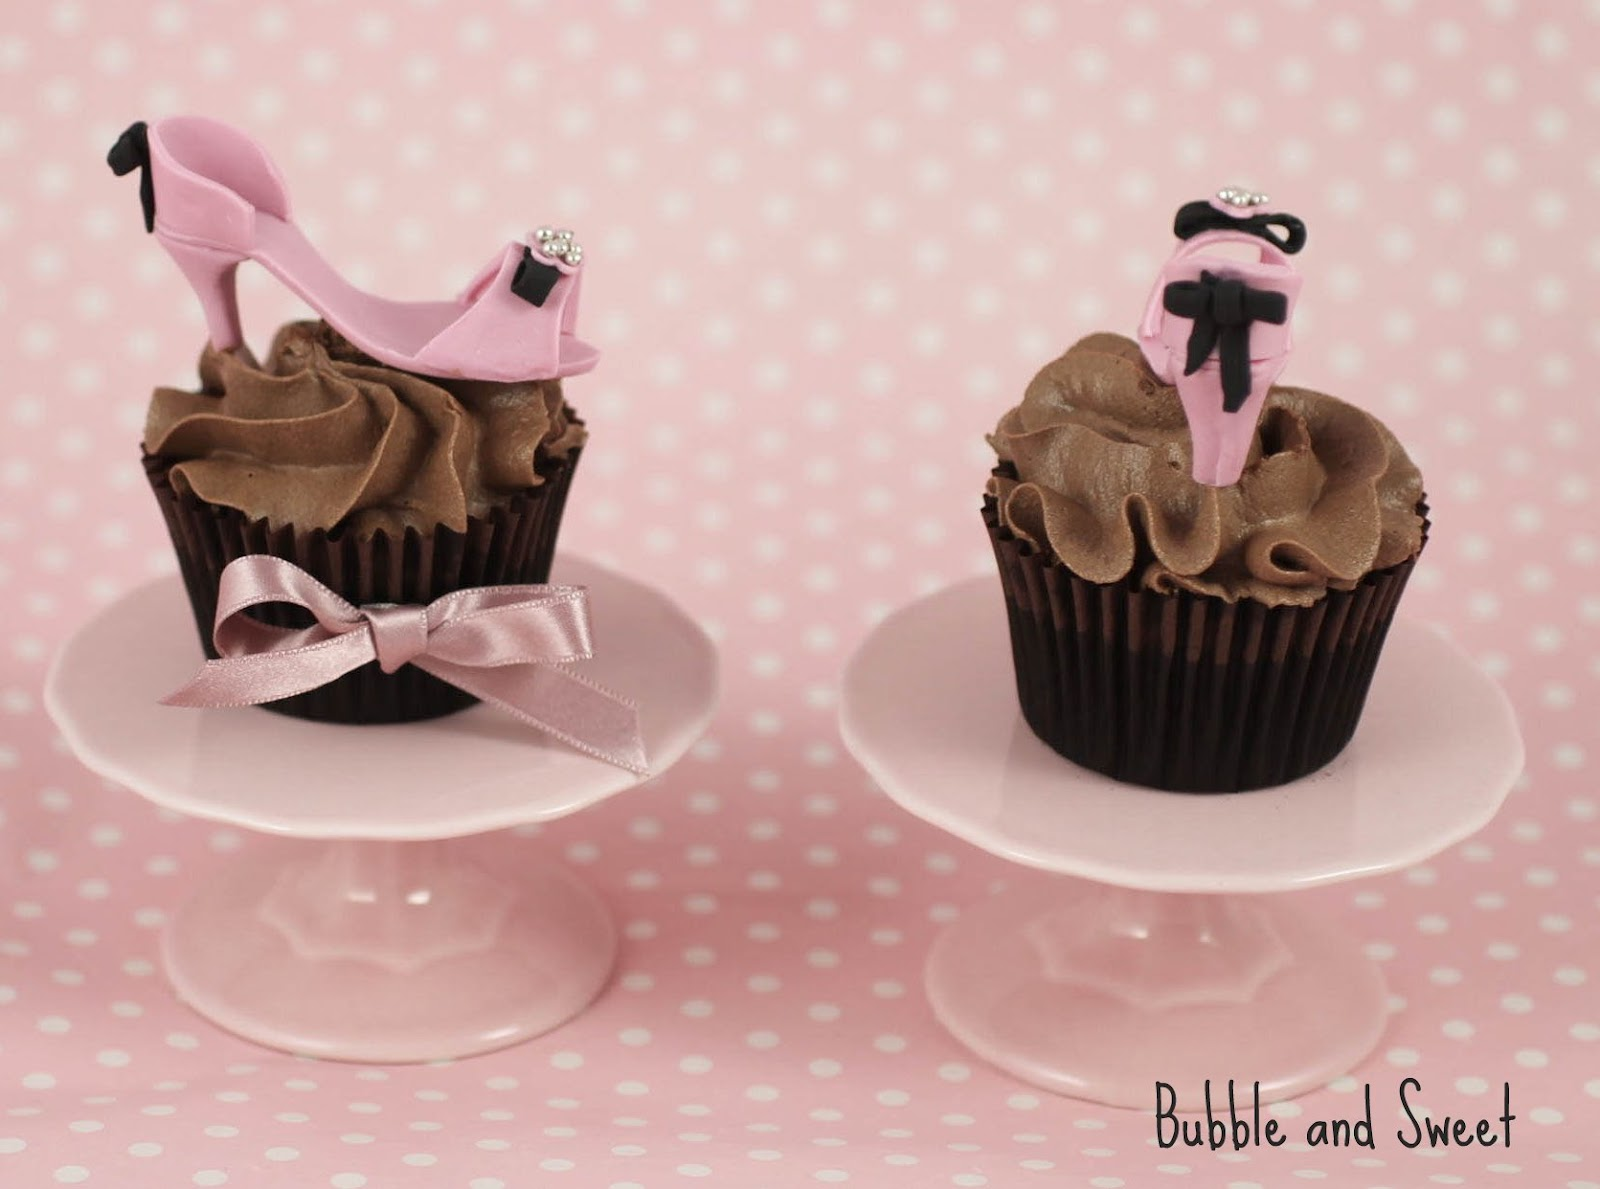 the of high heeled cupcakes where evil thoughts